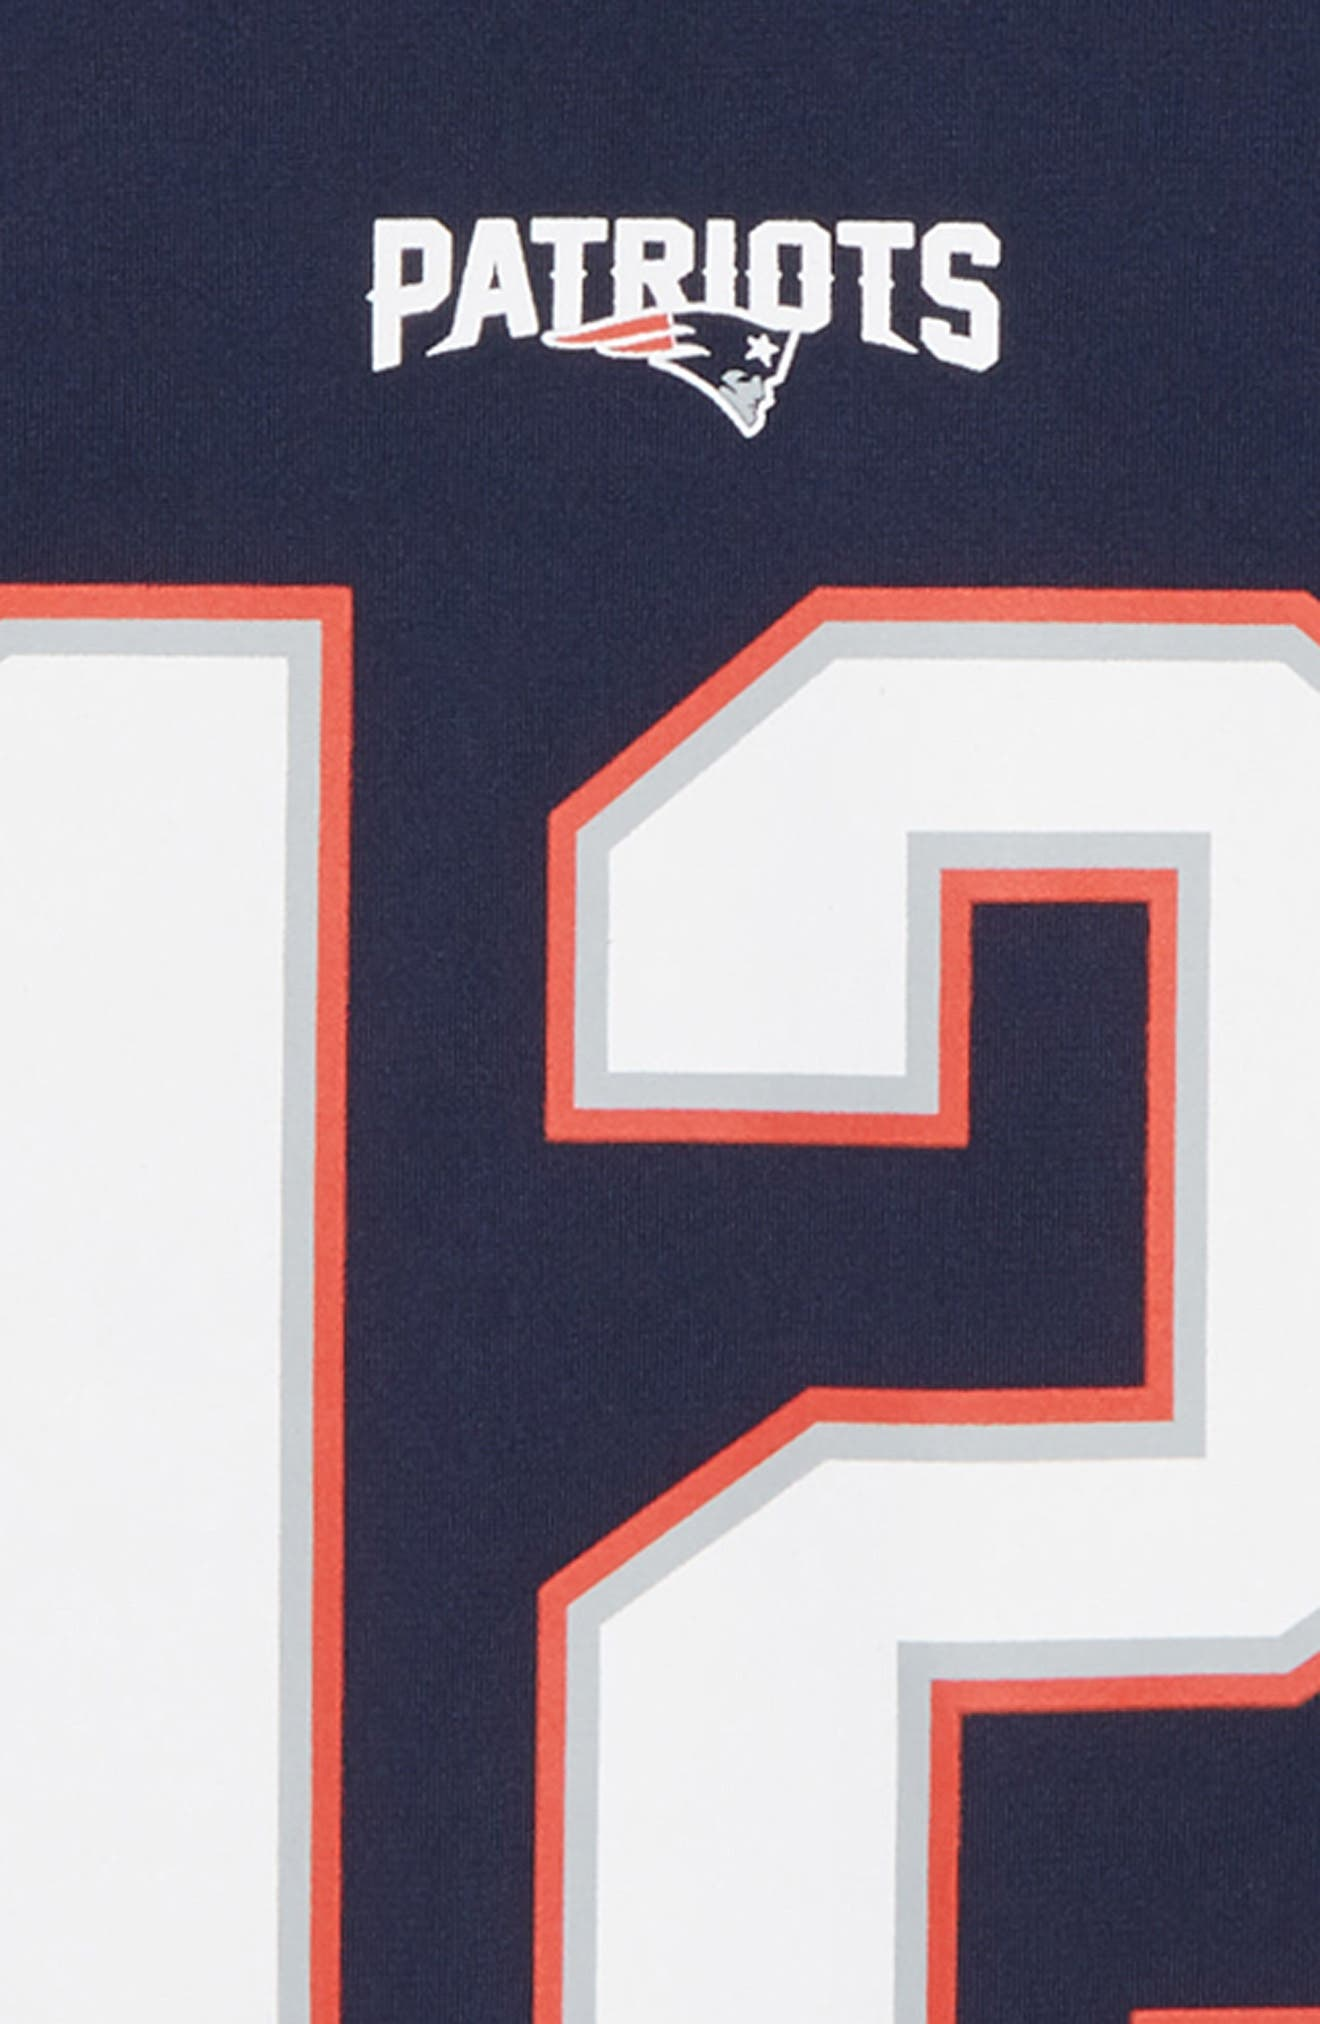 NFL Jersey T-Shirt,                             Alternate thumbnail 3, color,                             NAVY/ BRADY